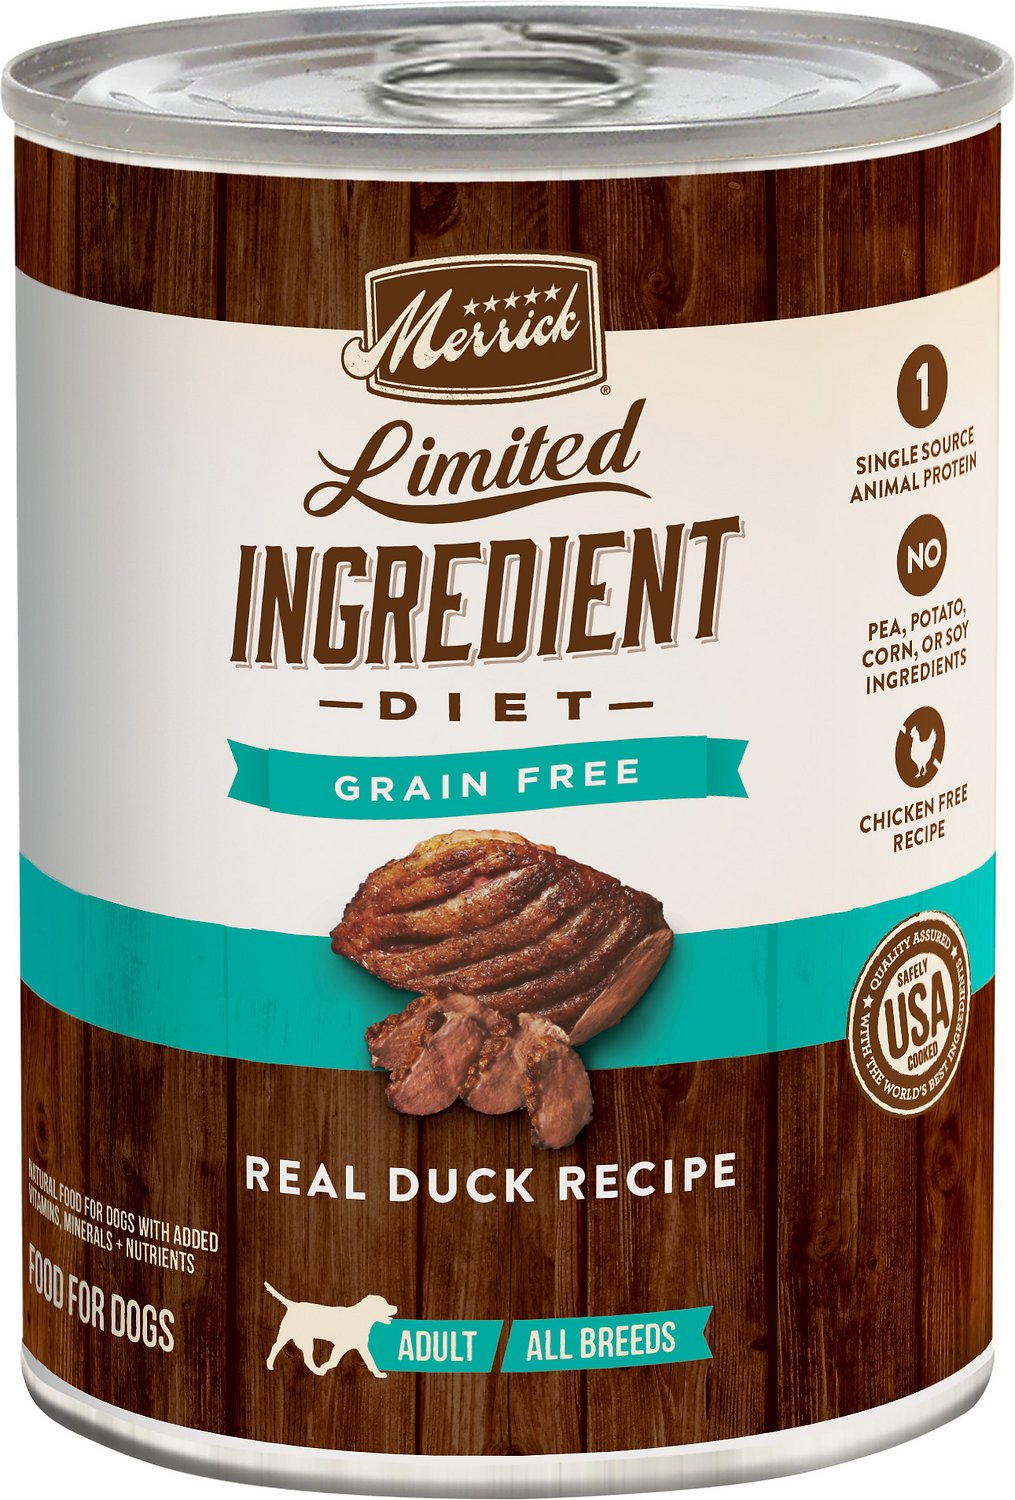 Merrick Limited Ingredient Canned Cat Food